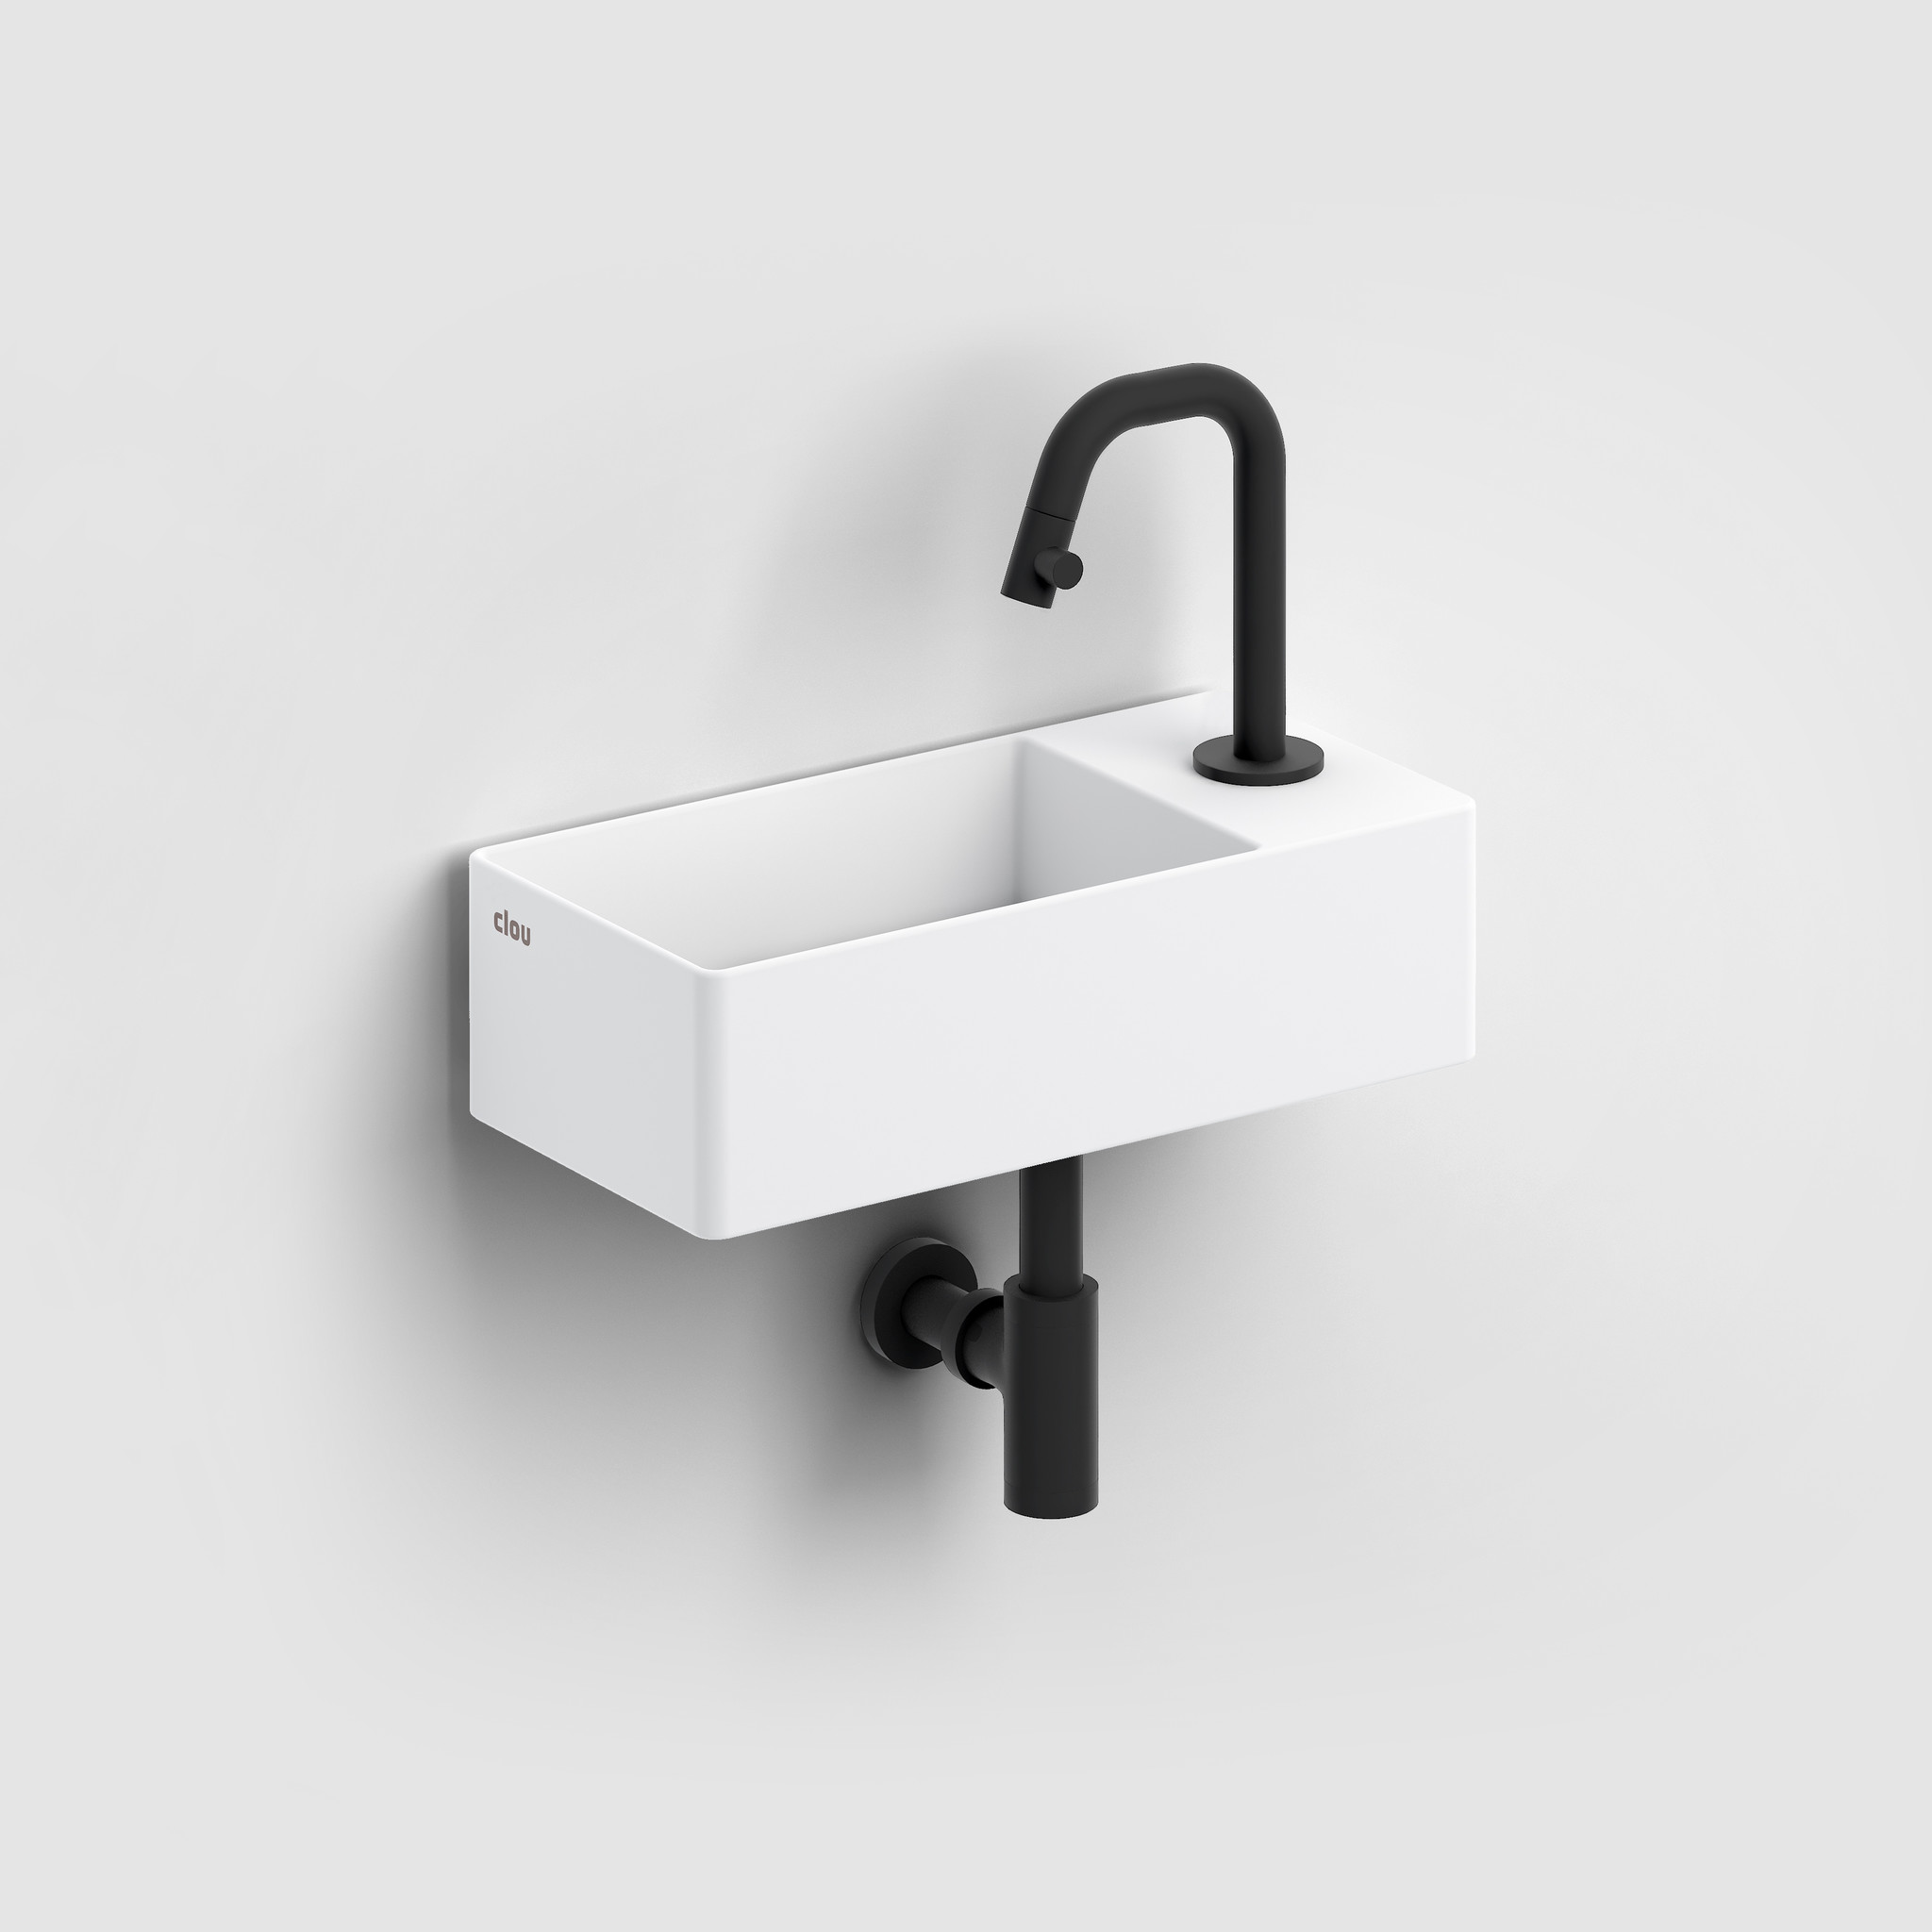 Kaldur cold water tap black